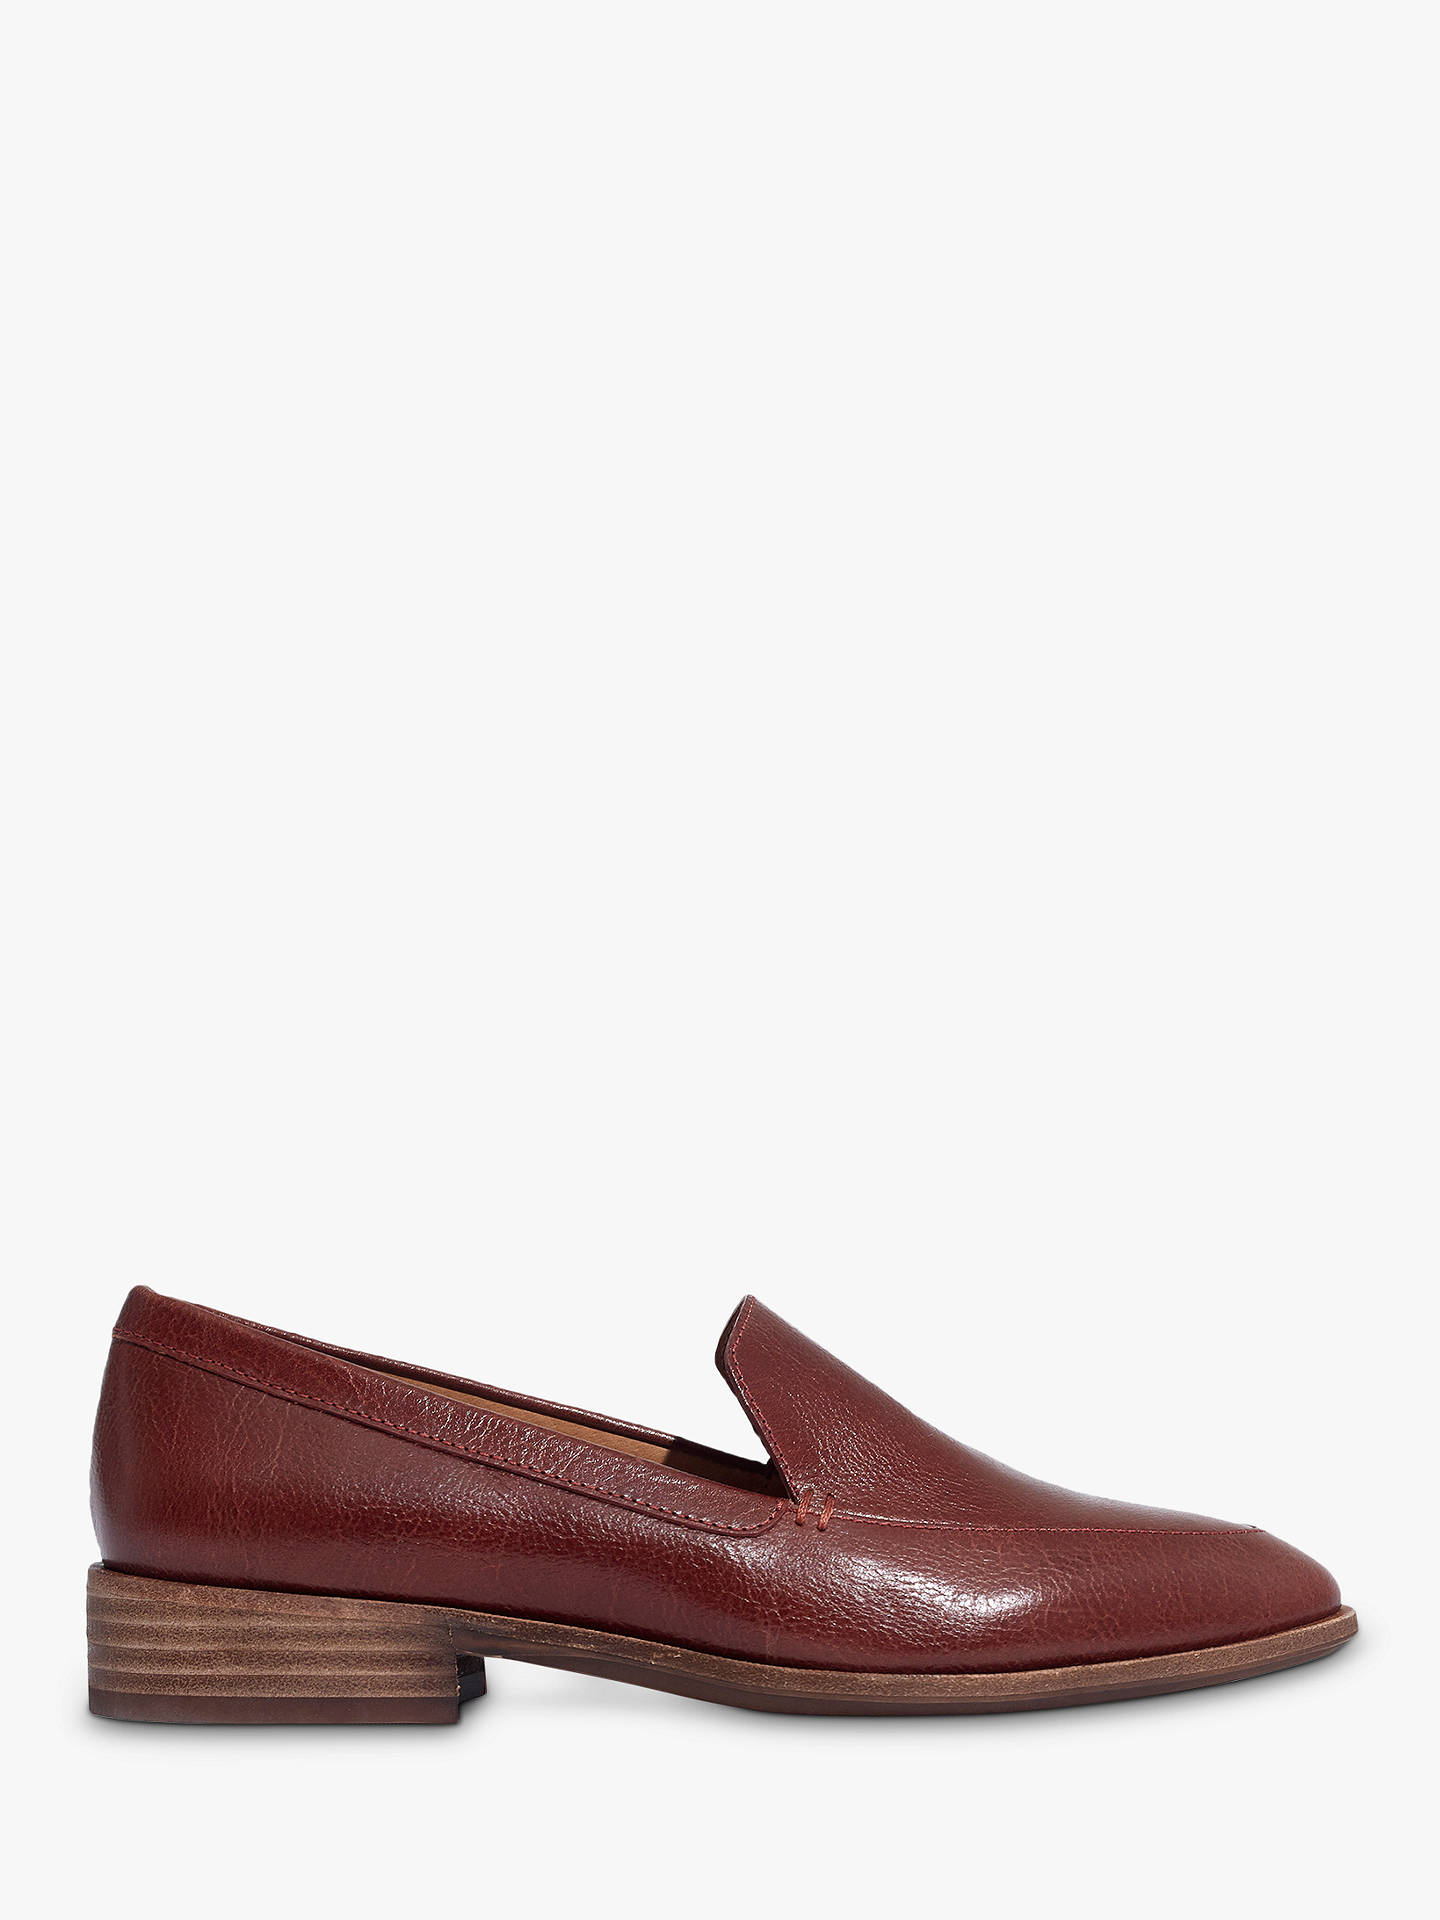 a7f04c08cce Madewell Frances Block Heel Loafers at John Lewis   Partners